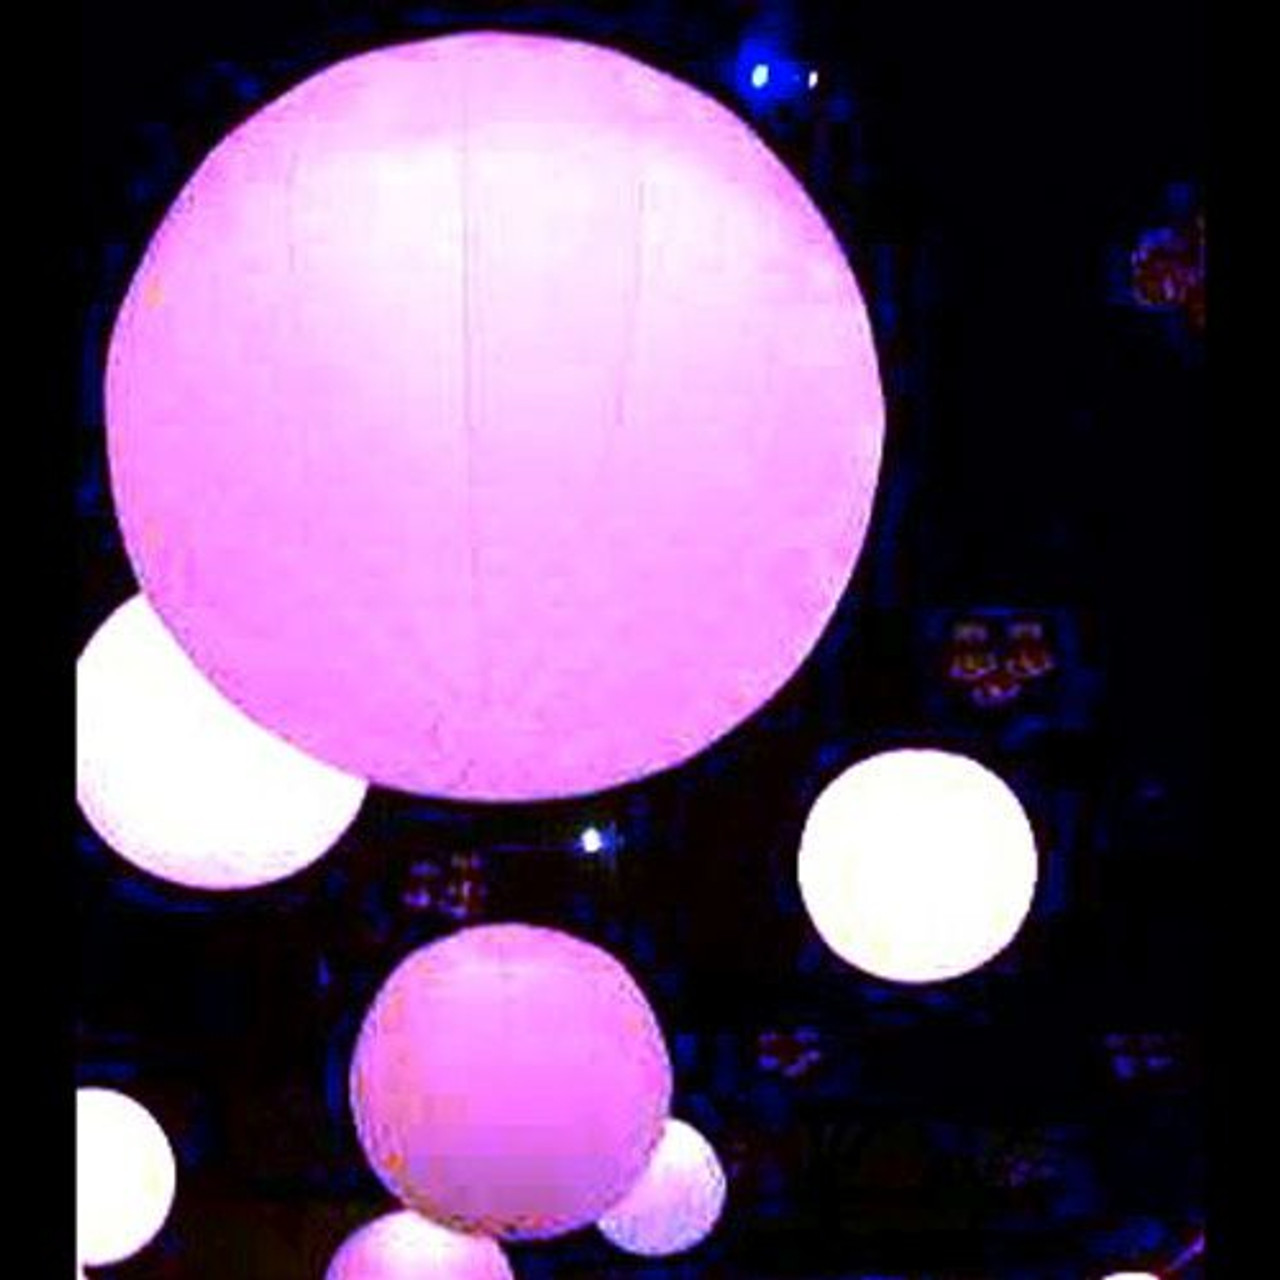 NIGHTCLUB, DECOR,INFLATABLE, INFLATEABLE, BLOW UP, BALLOON, CIRCULAR, ROUND, SPHERE, BALL, LED, ILLUMINATED, REMOTE, HANGING